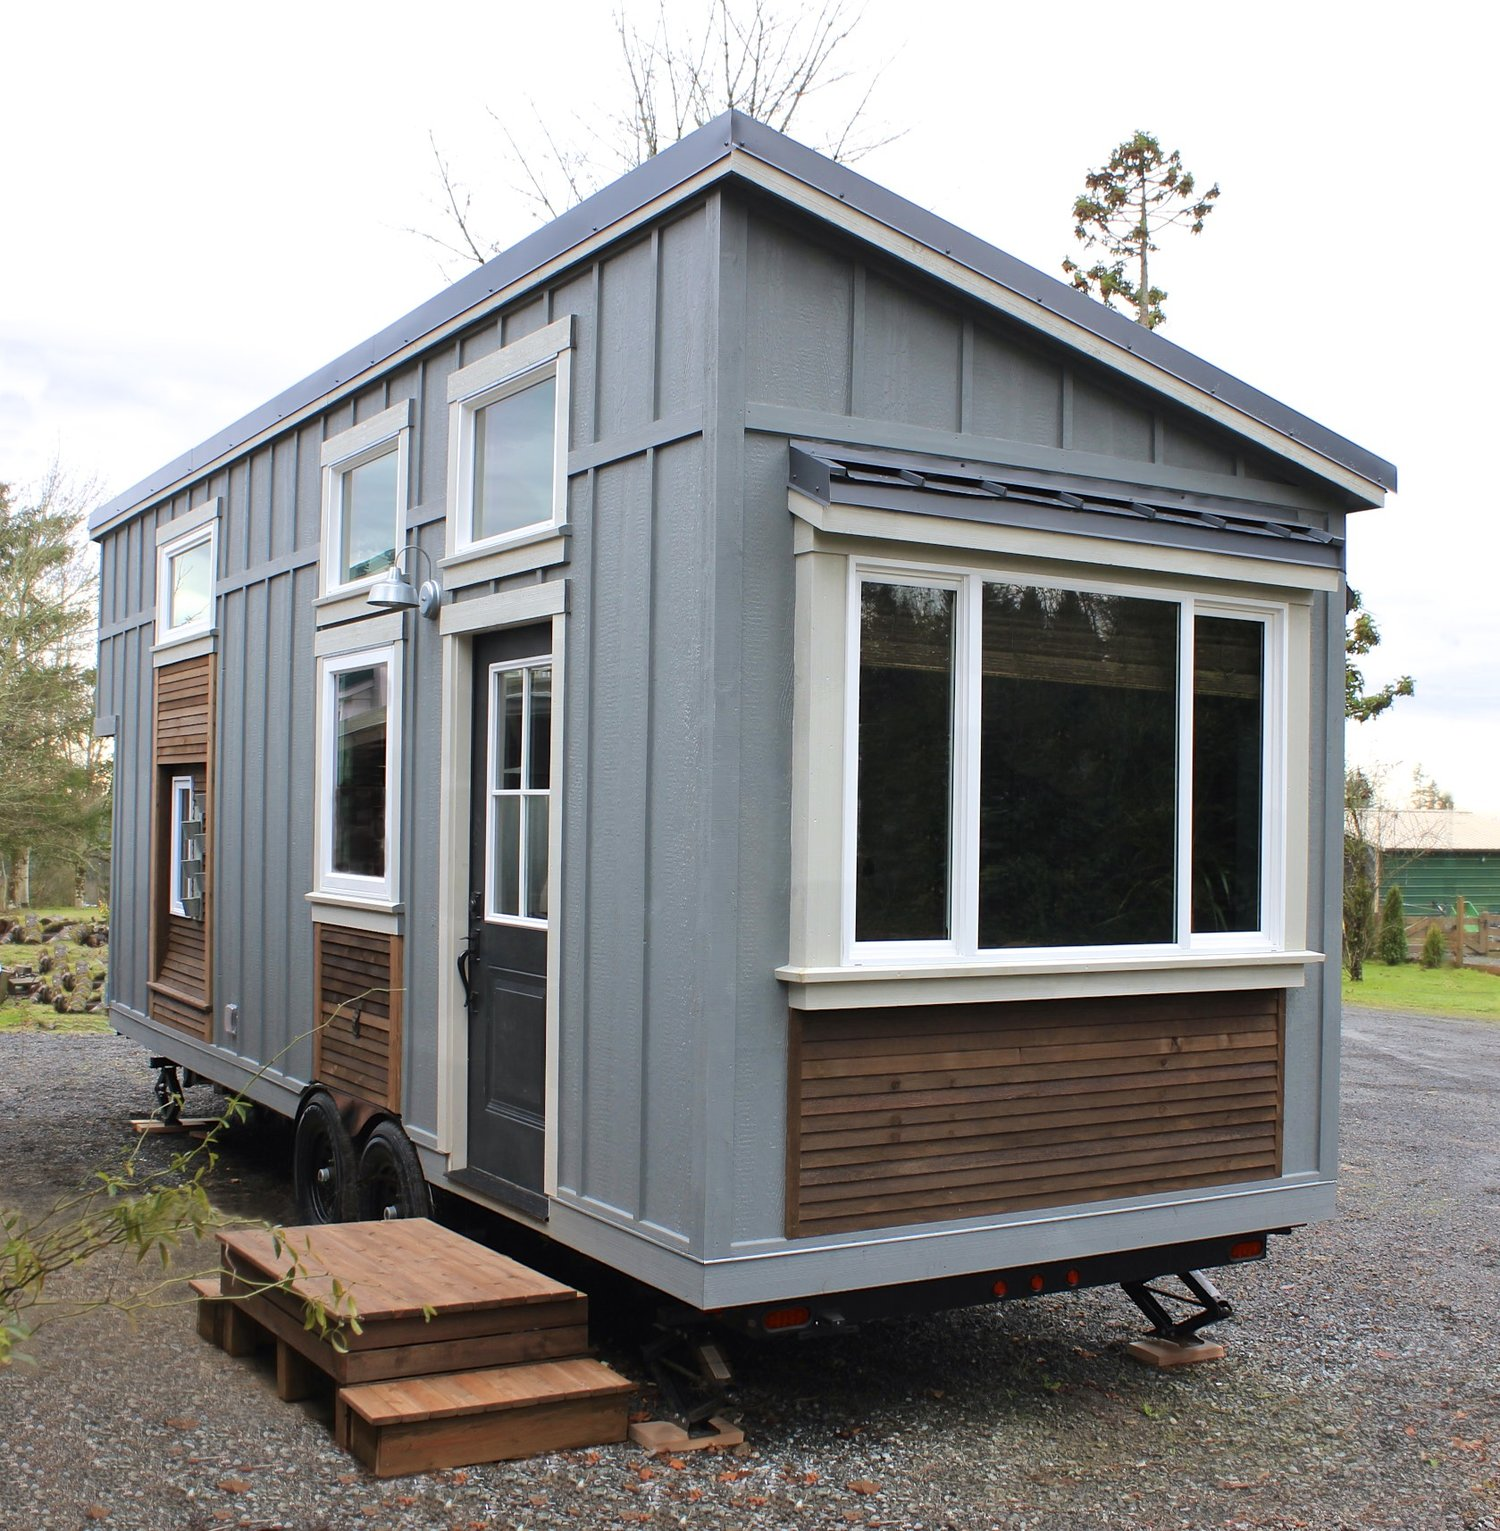 Tiny House Town The Urban Craftman By Handcrafted Movement